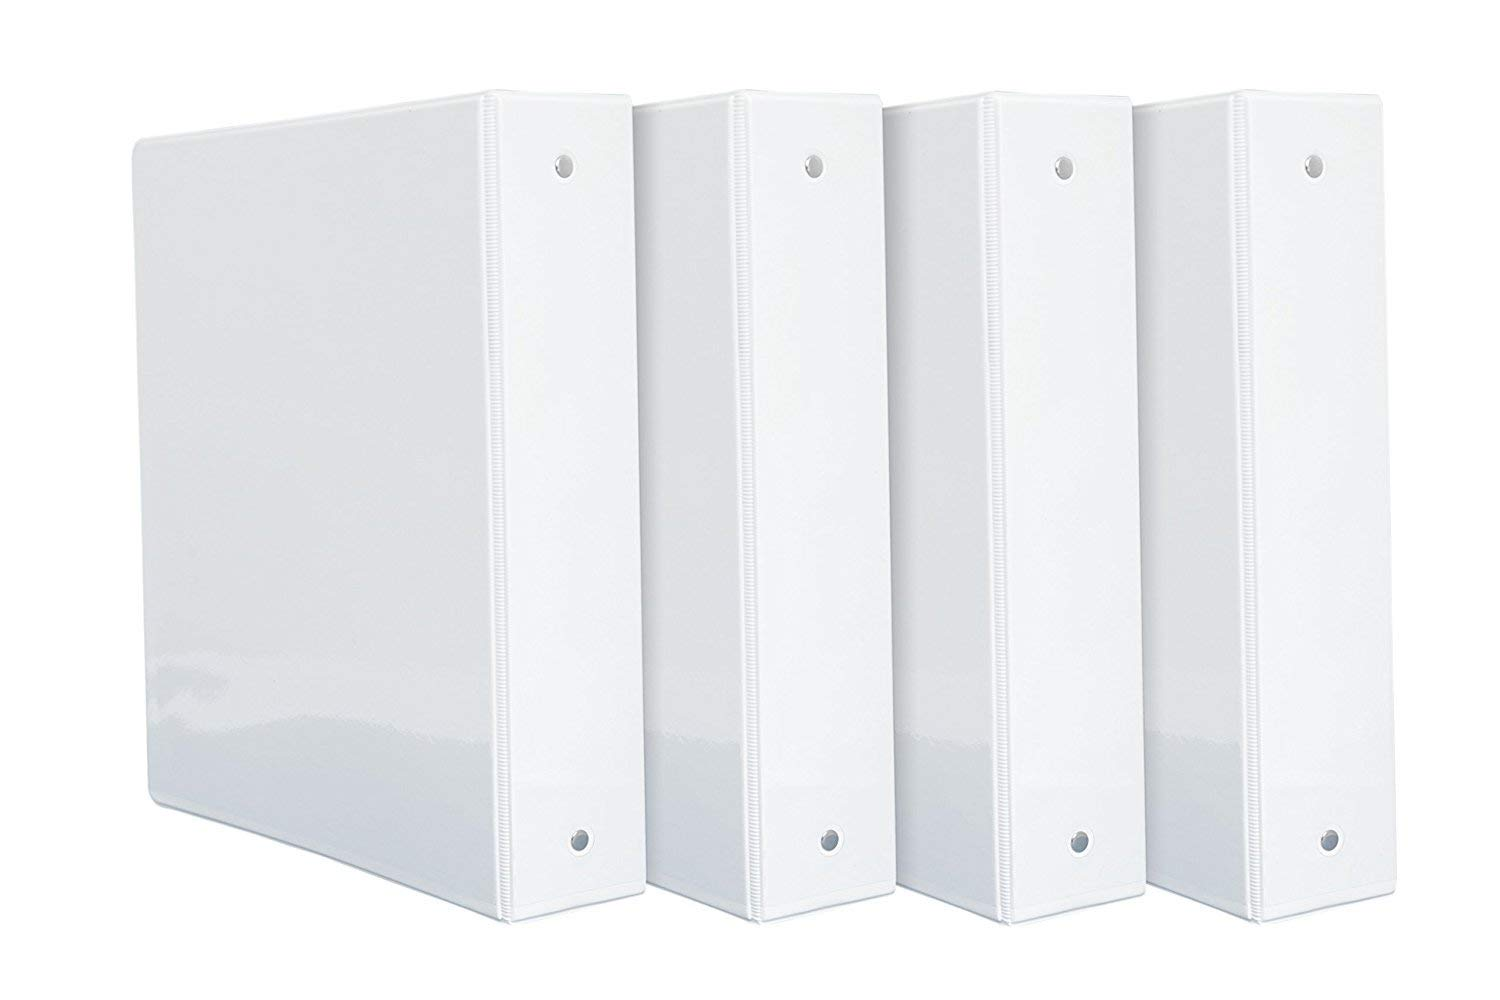 2 inch 3-Ring Binders, Rugged Design for Home, Office, and School-For 8.5 x 11 Paper, White, 4 Binders